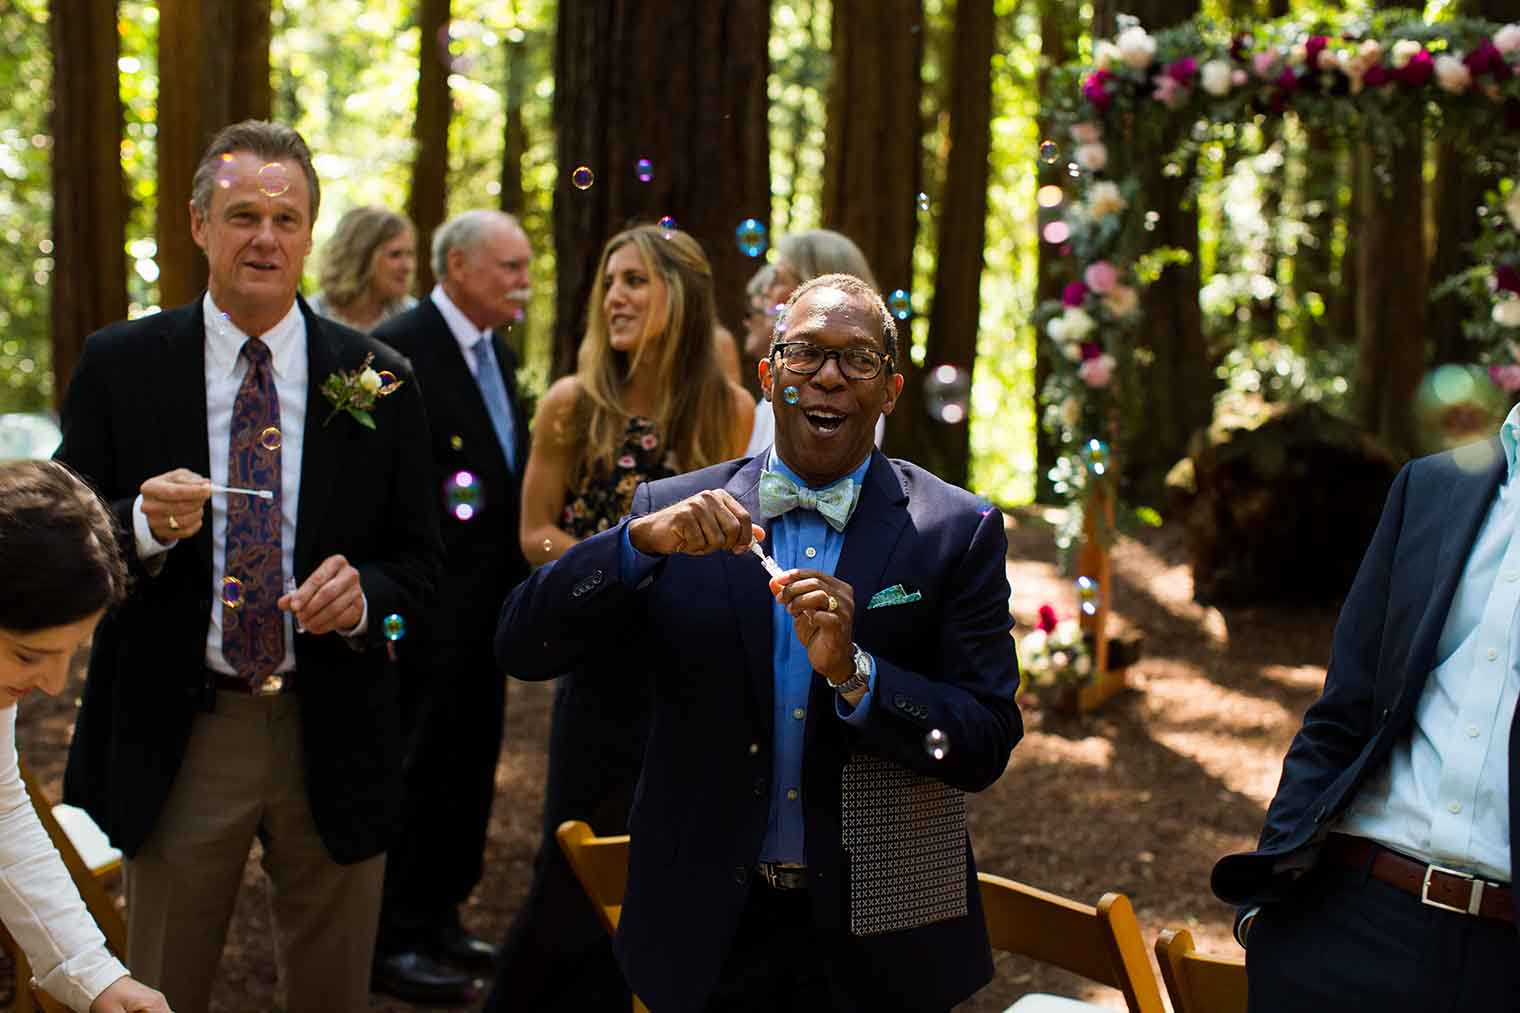 Wedding Guest with bubbles at Redwood Ceremony